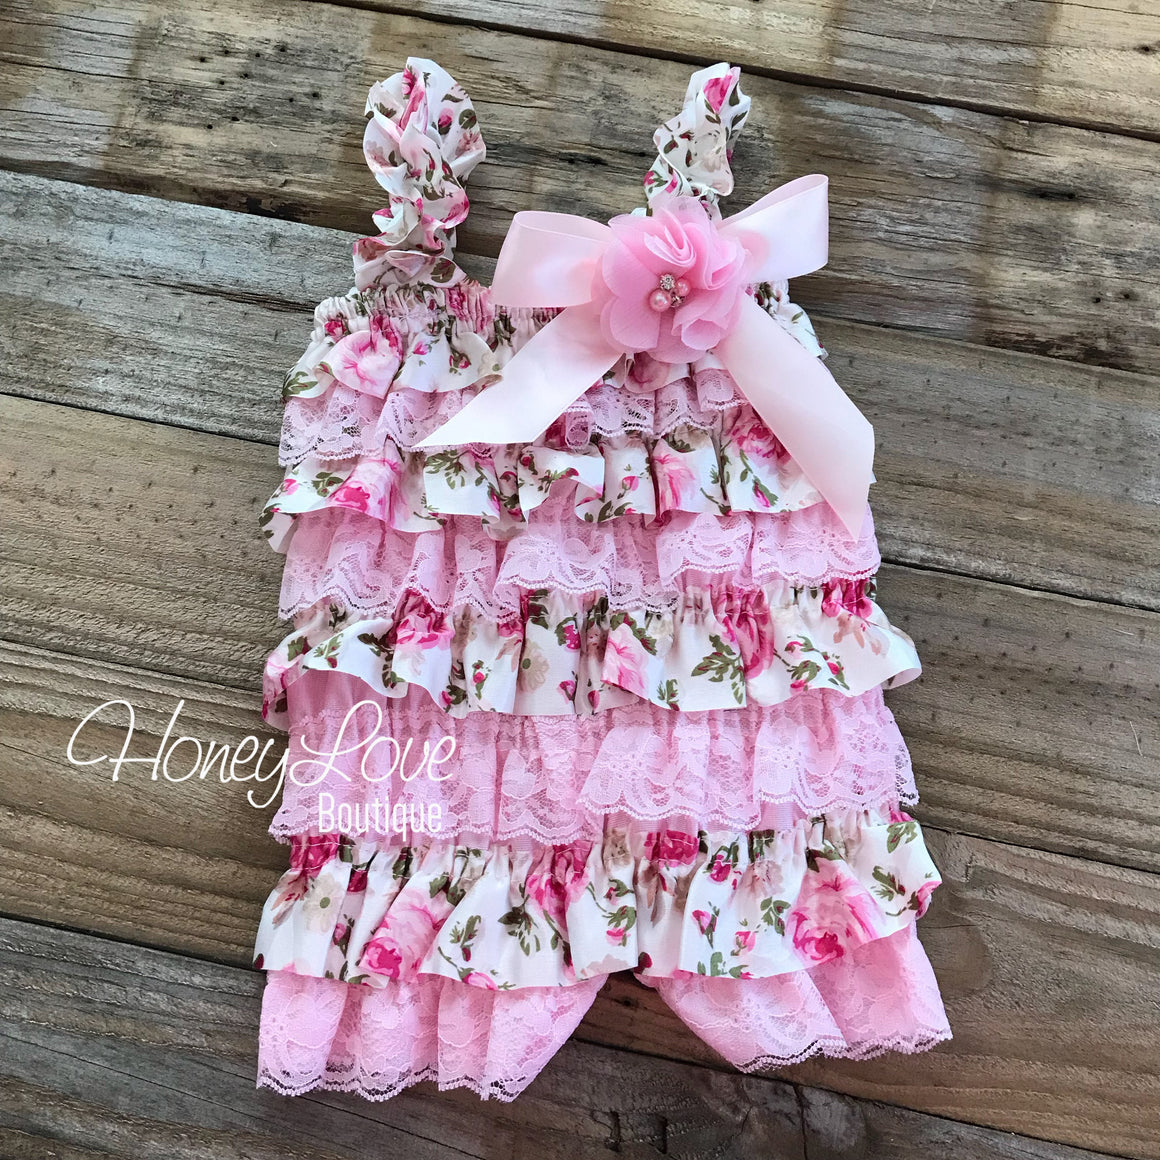 Satin & Lace Petti Romper - Pink and Floral  - with pink flower embellishment - HoneyLoveBoutique